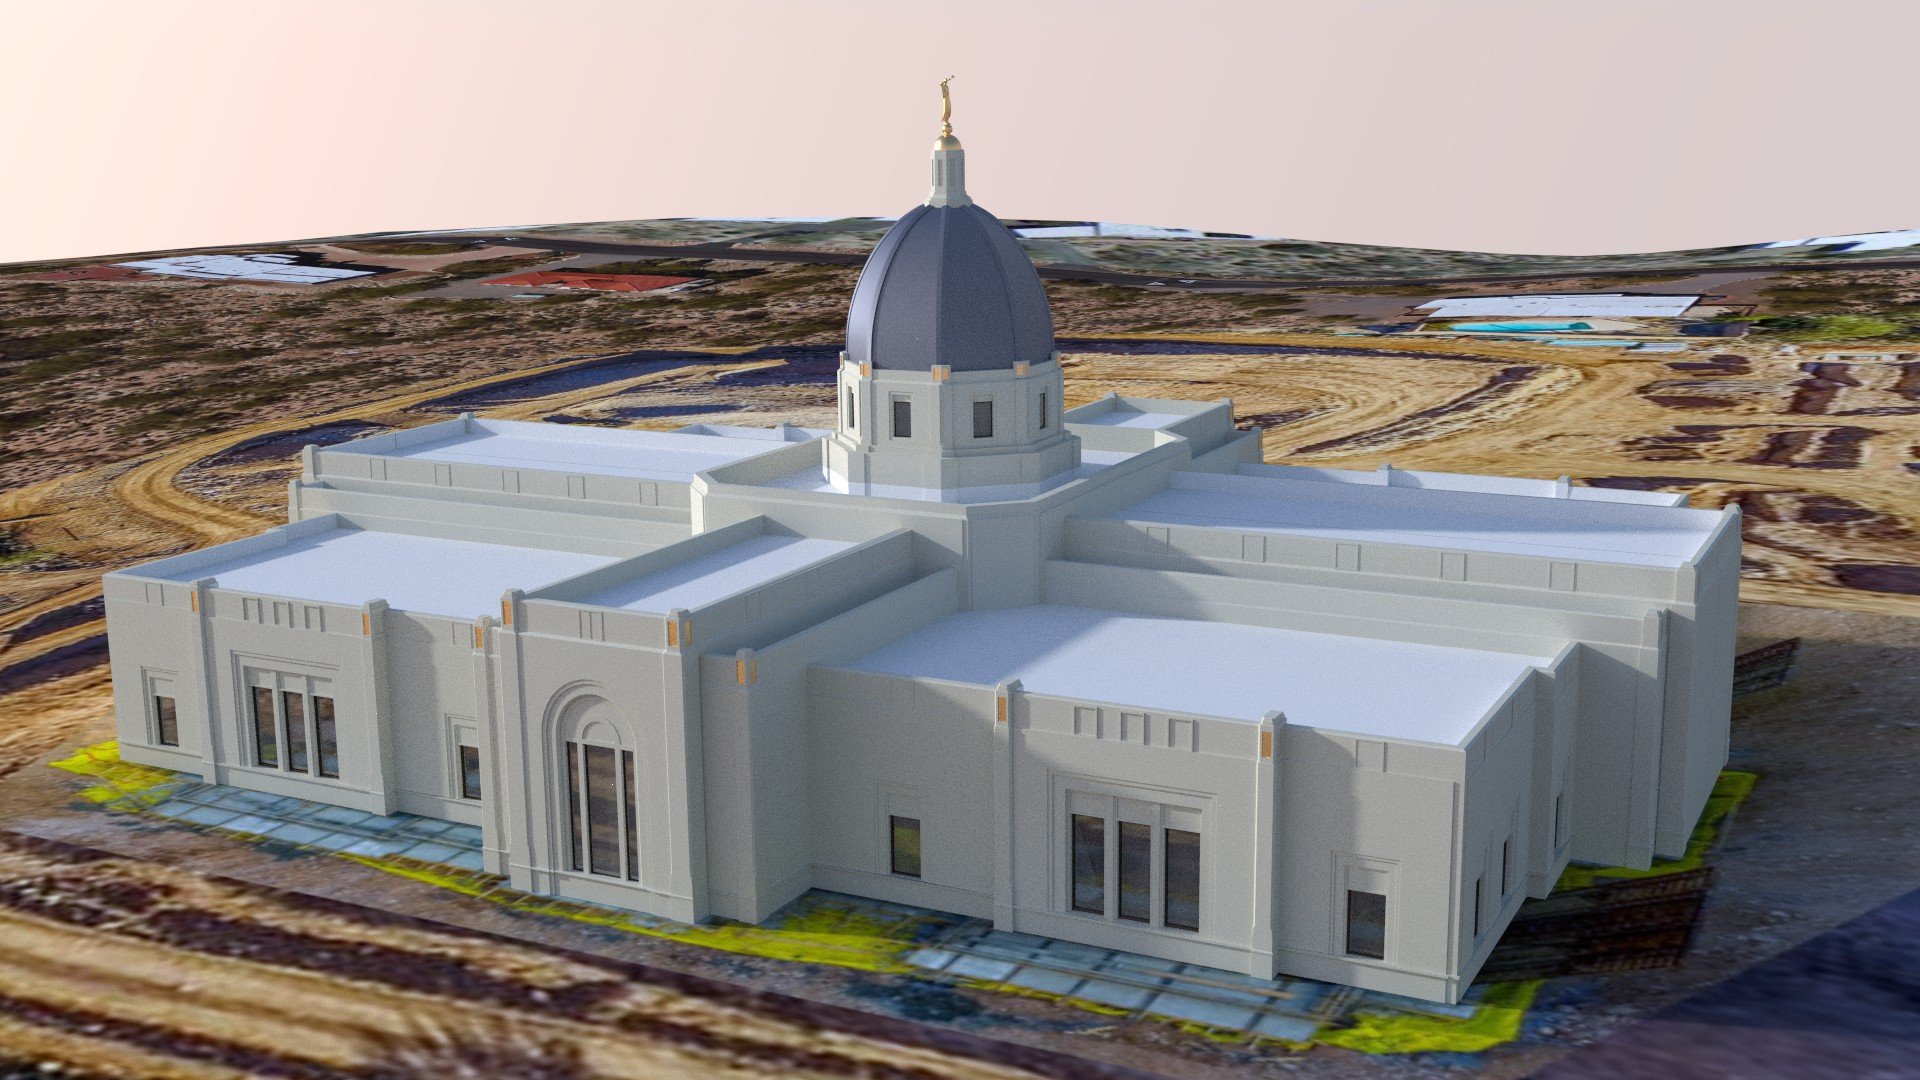 Tucson Arizona Temple render update